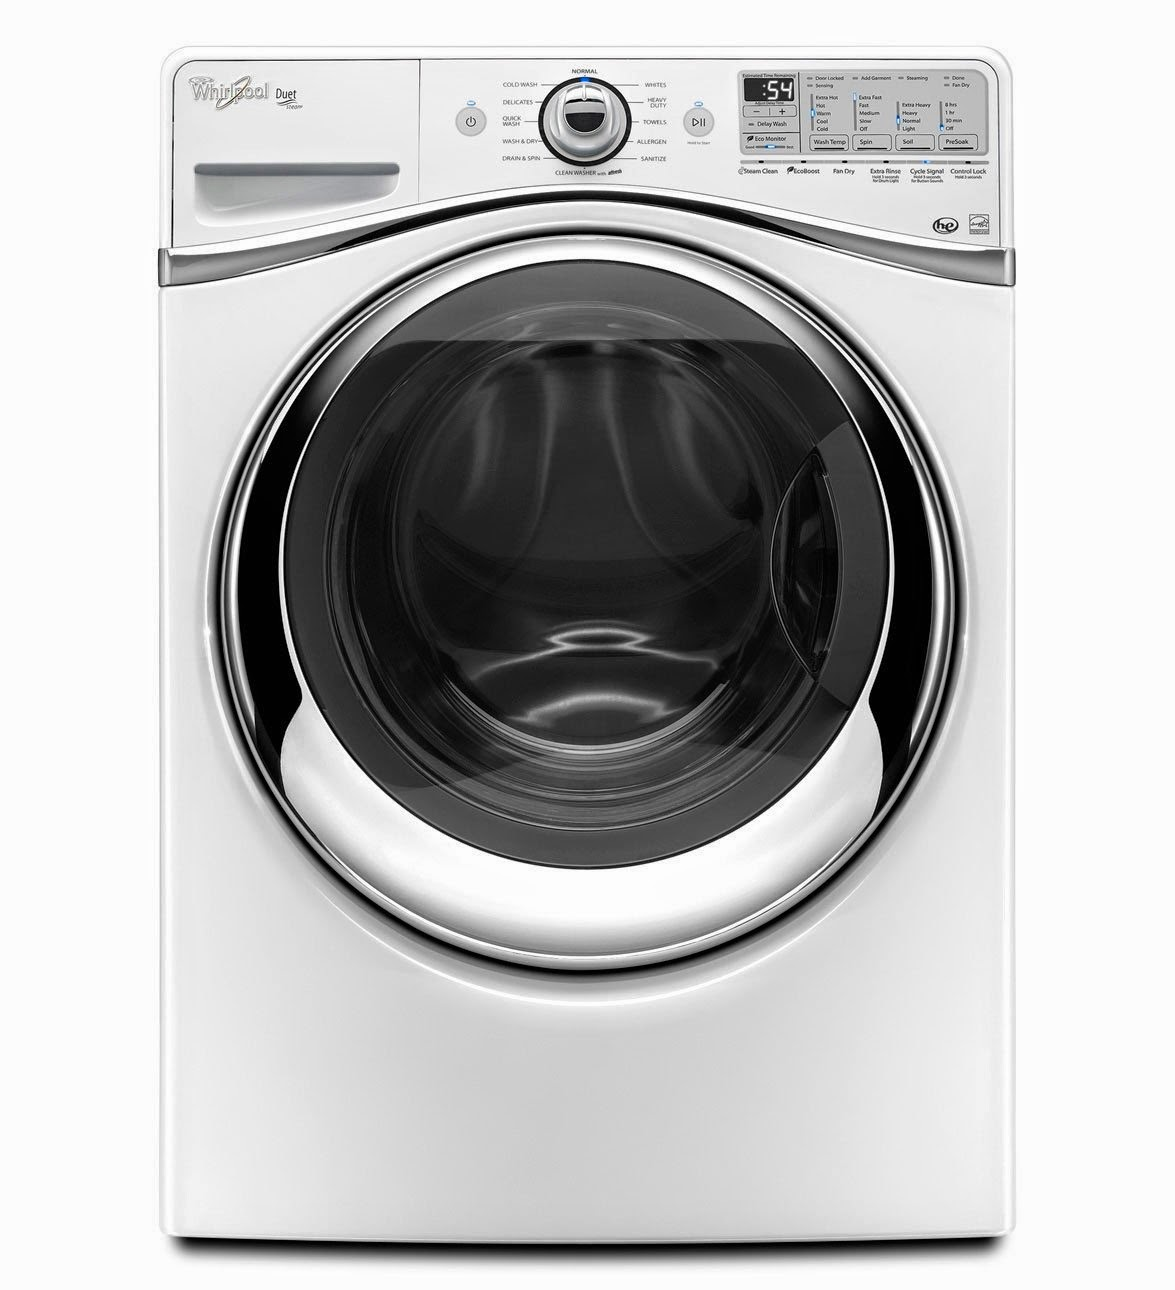 whirlpool duet washer and dryer. Black Bedroom Furniture Sets. Home Design Ideas